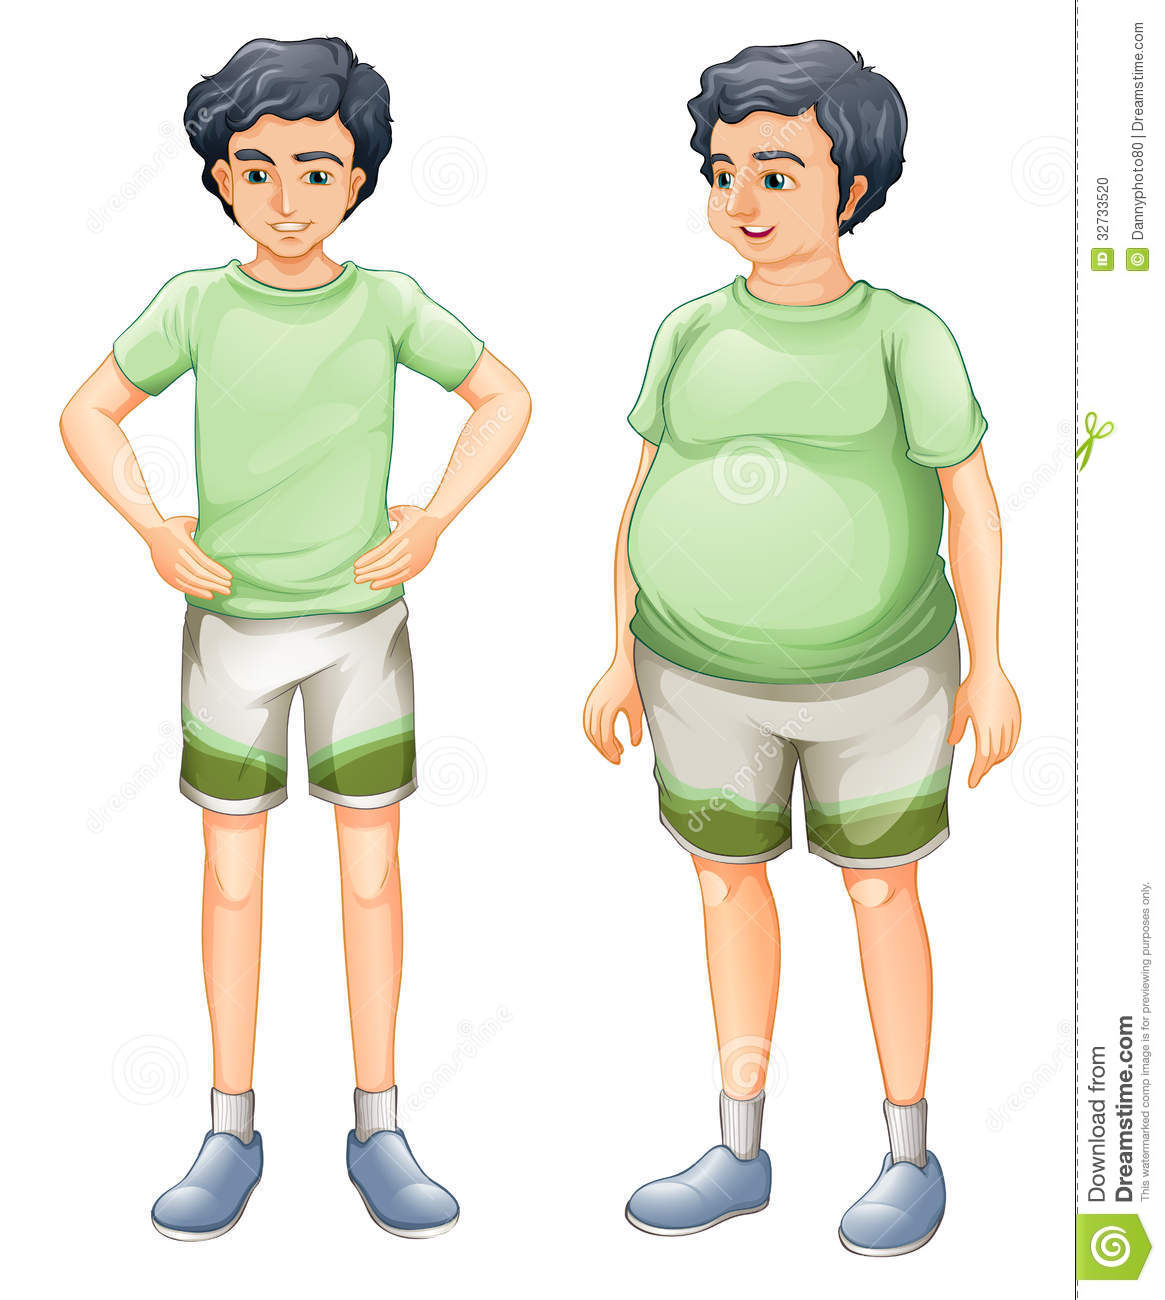 Illustration Of The Two Boys With Same Shirt But Of Different Body